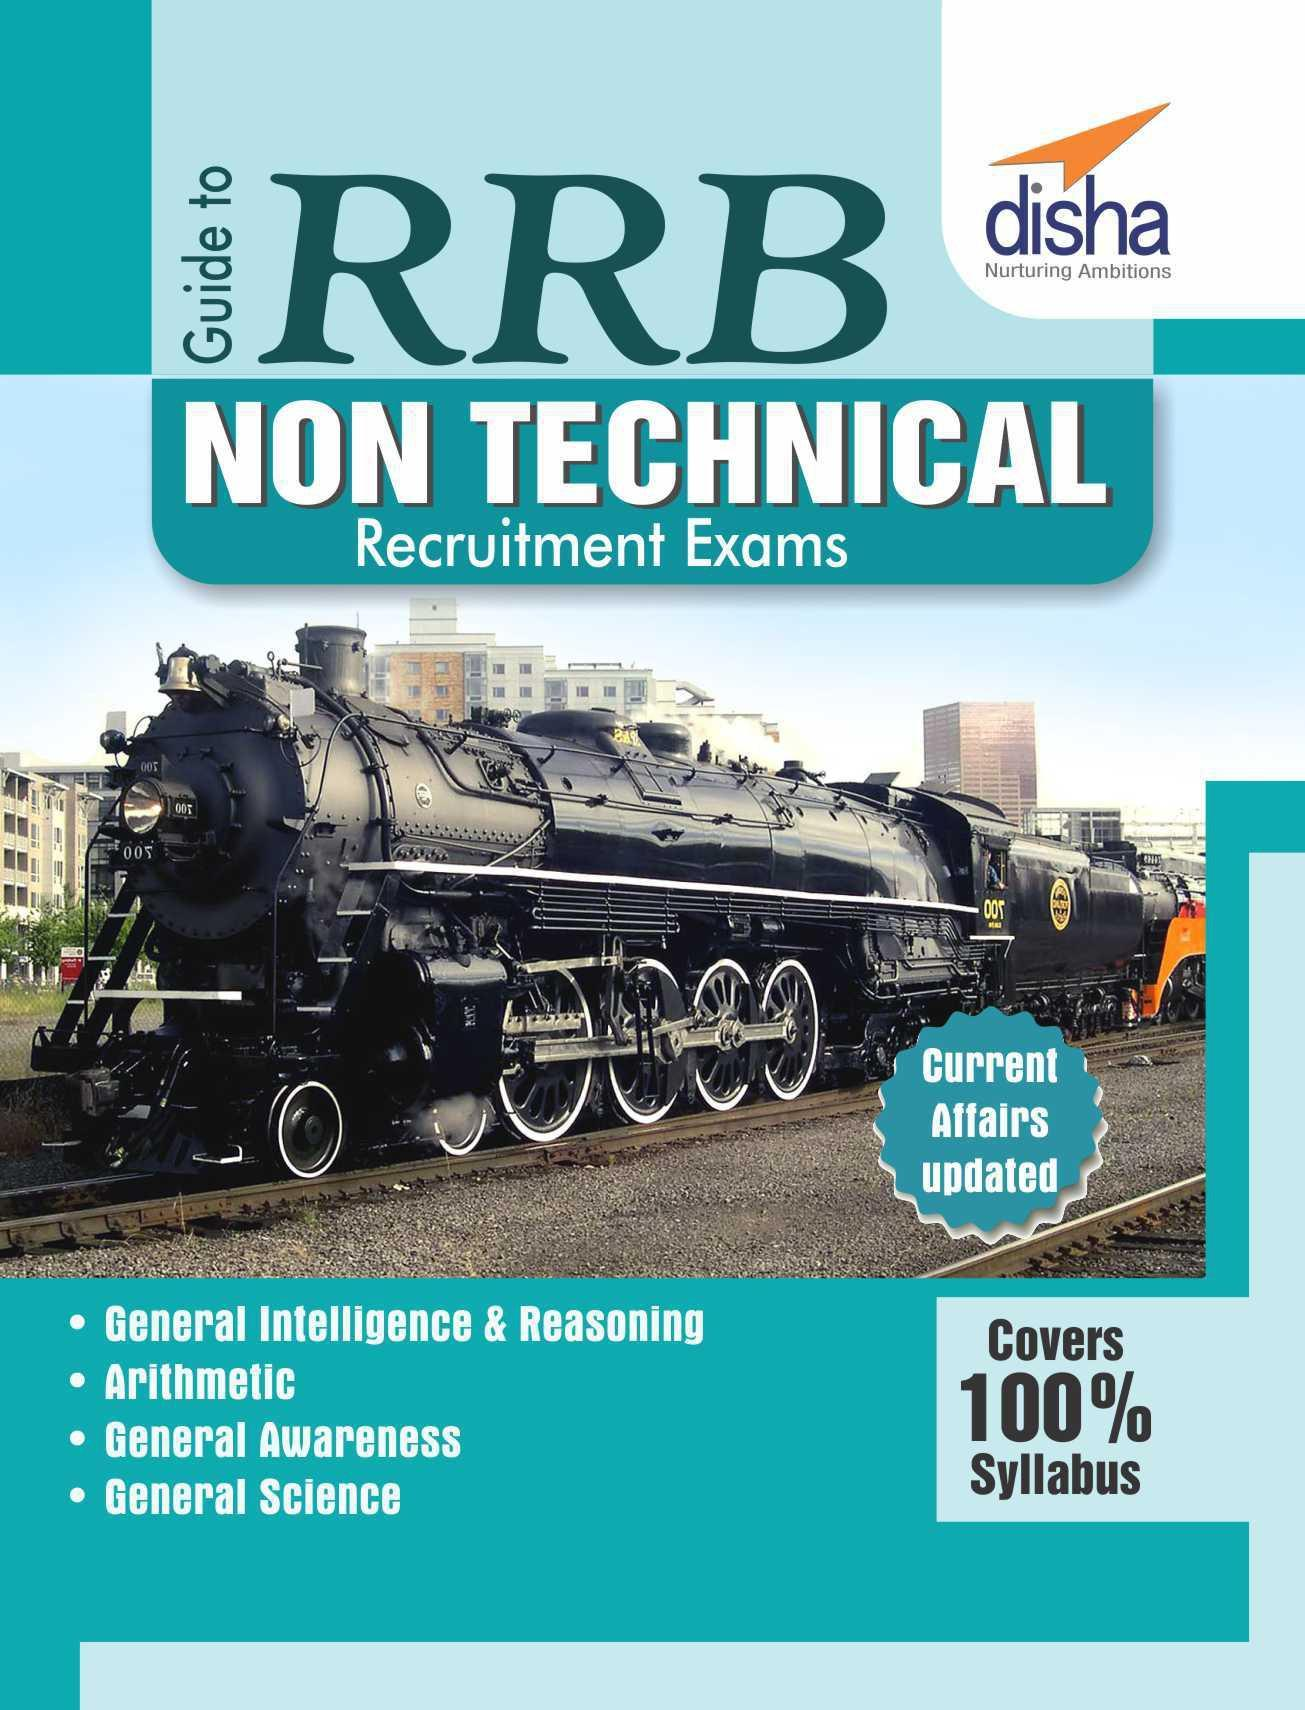 Guide to RRB Non Technical Recruitment Exam price in India.